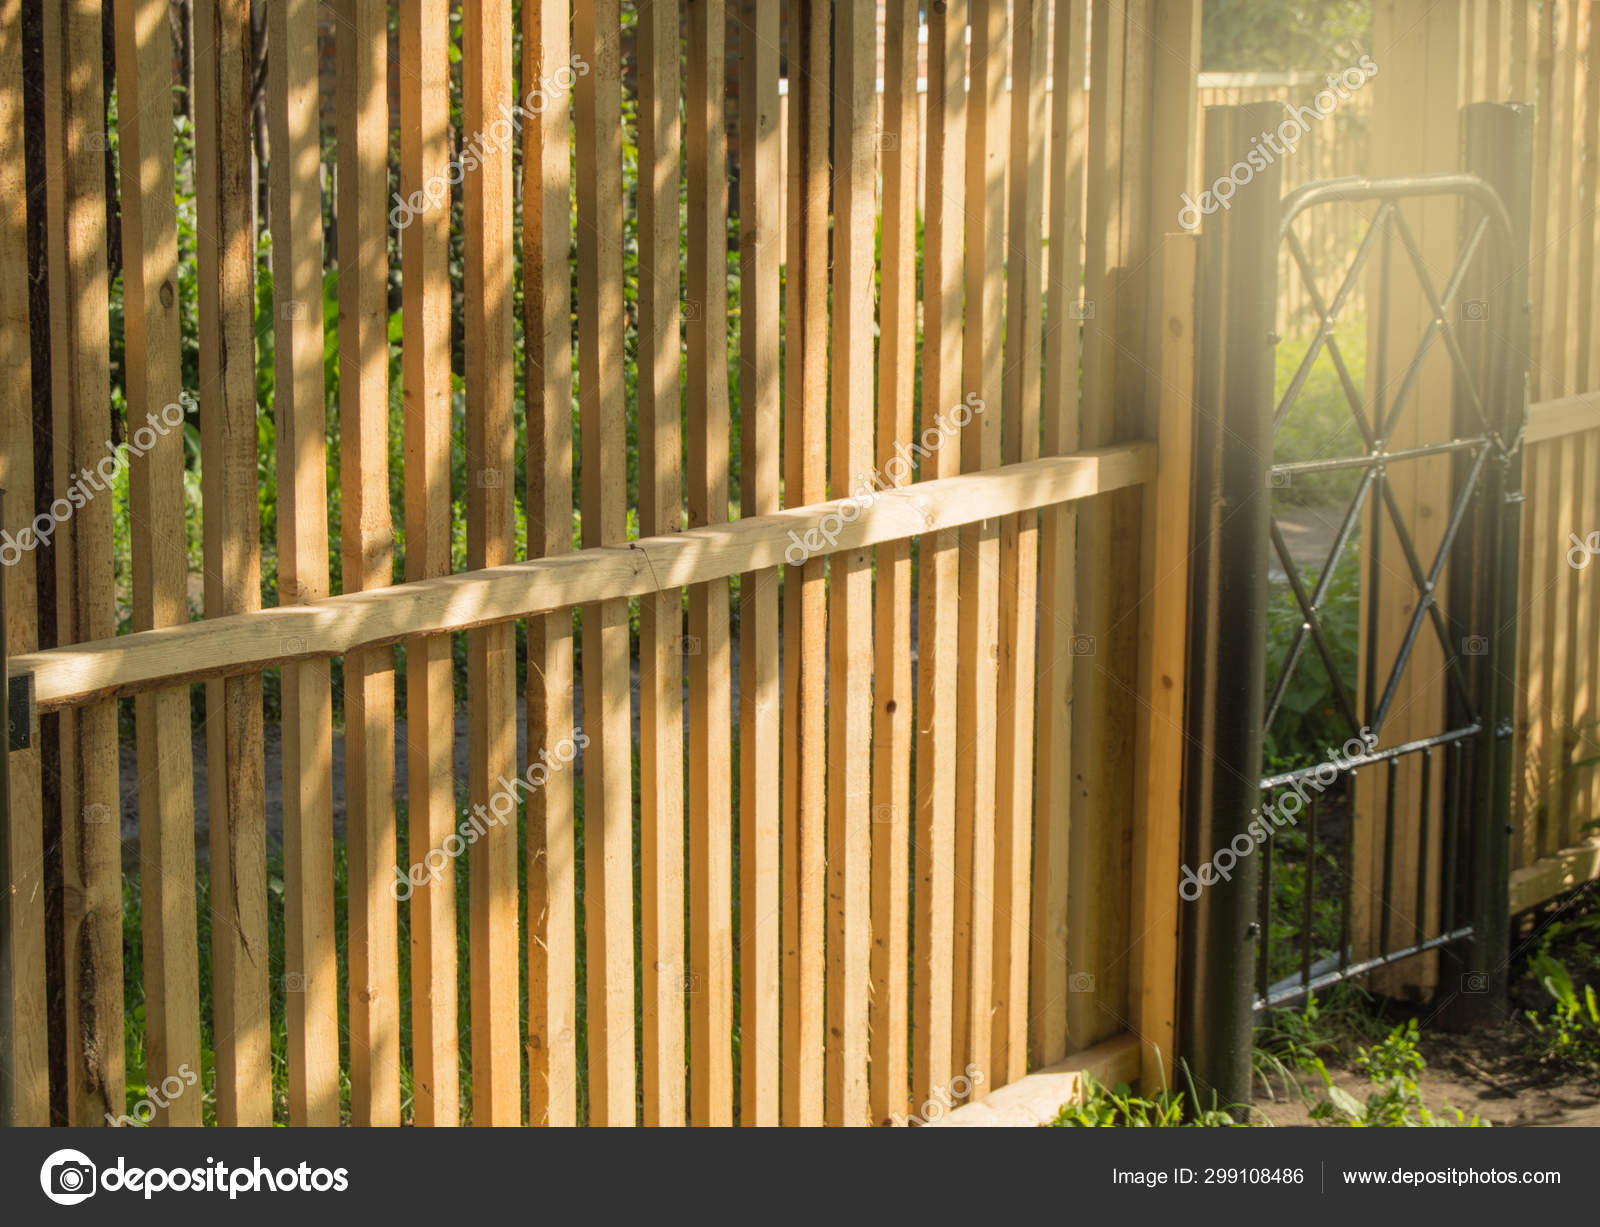 Rustic New Wooden Fence With Black Metal Posts And Gates Garden And Vegetable Garden Fence On A Sunny Summer Day Against The Background Of Plants And Trees Stock Photo C Esweta3 Gmail Com